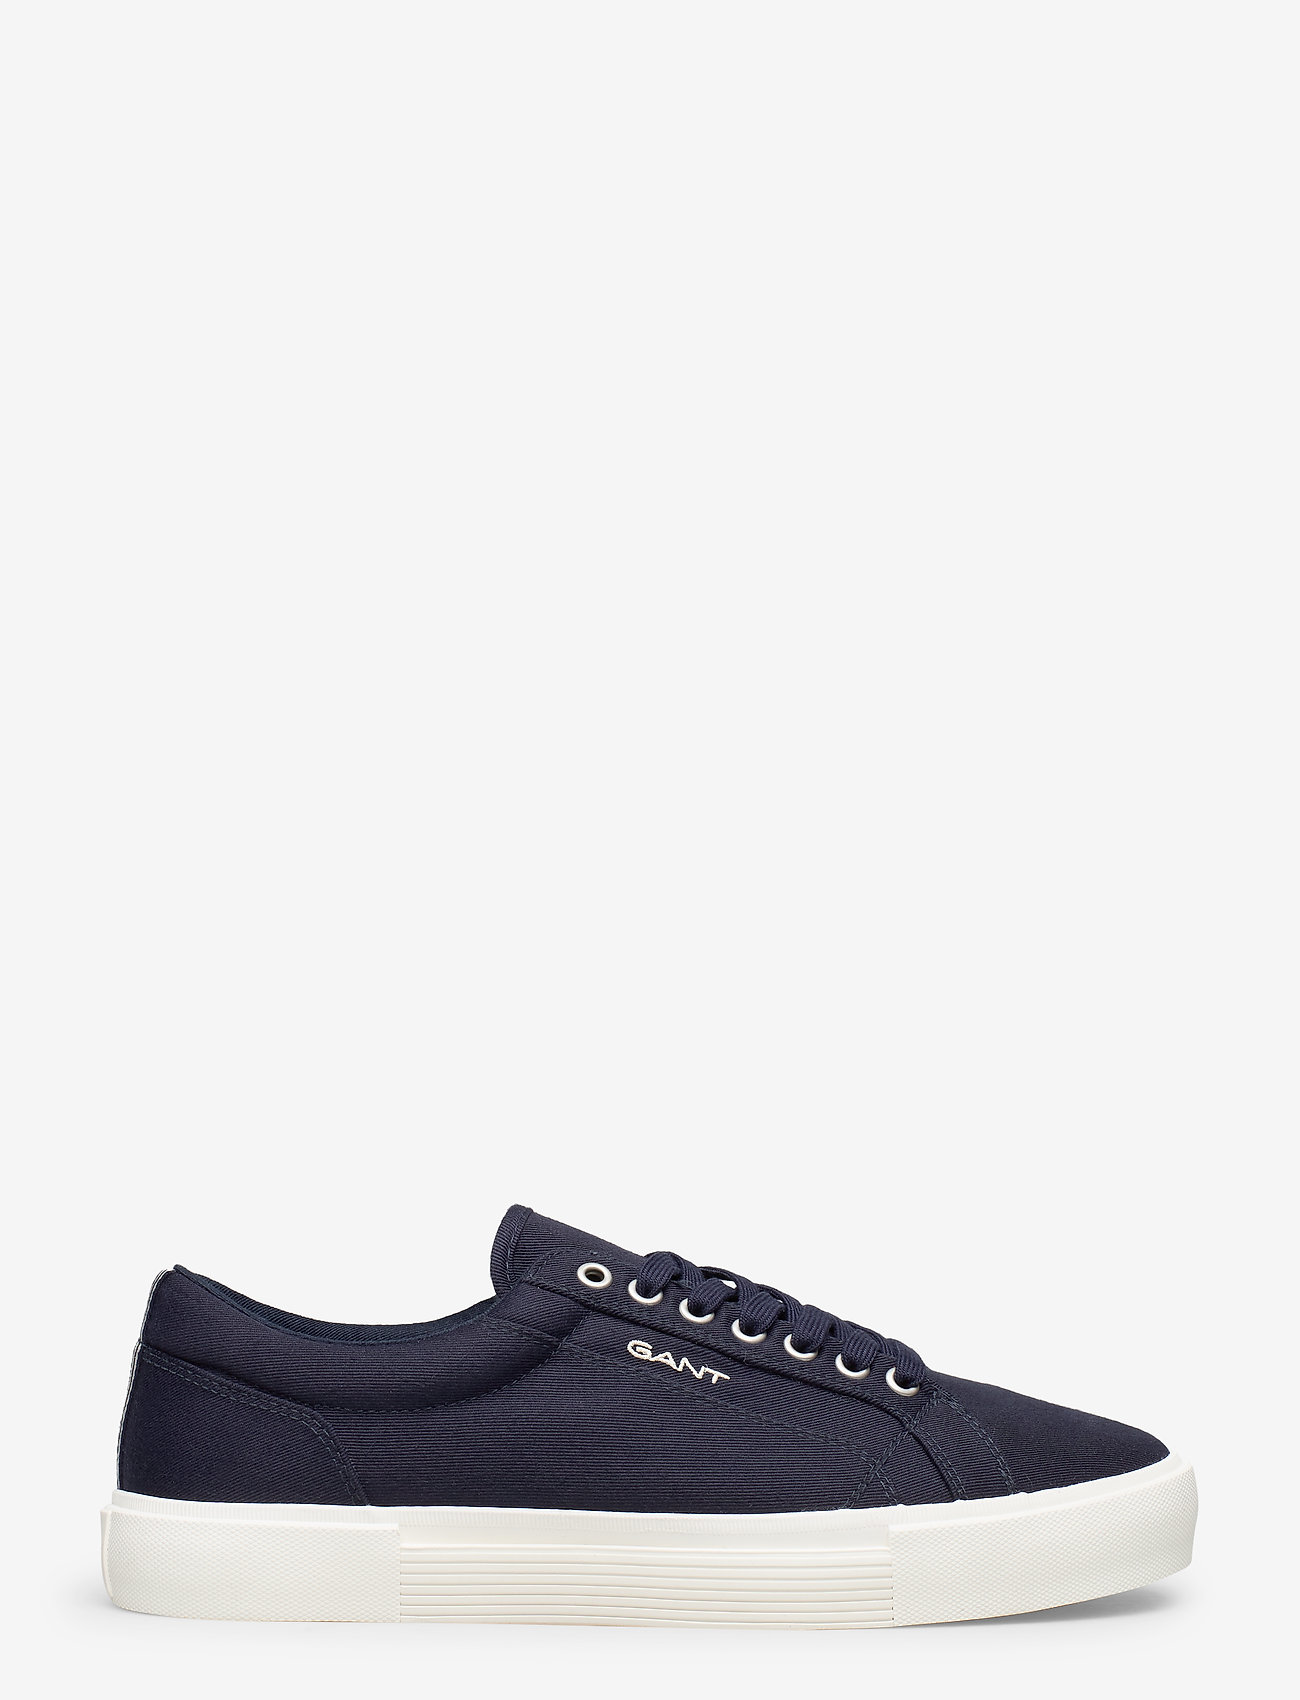 GANT - Champroyal Low laceshoes - low tops - marine - 1